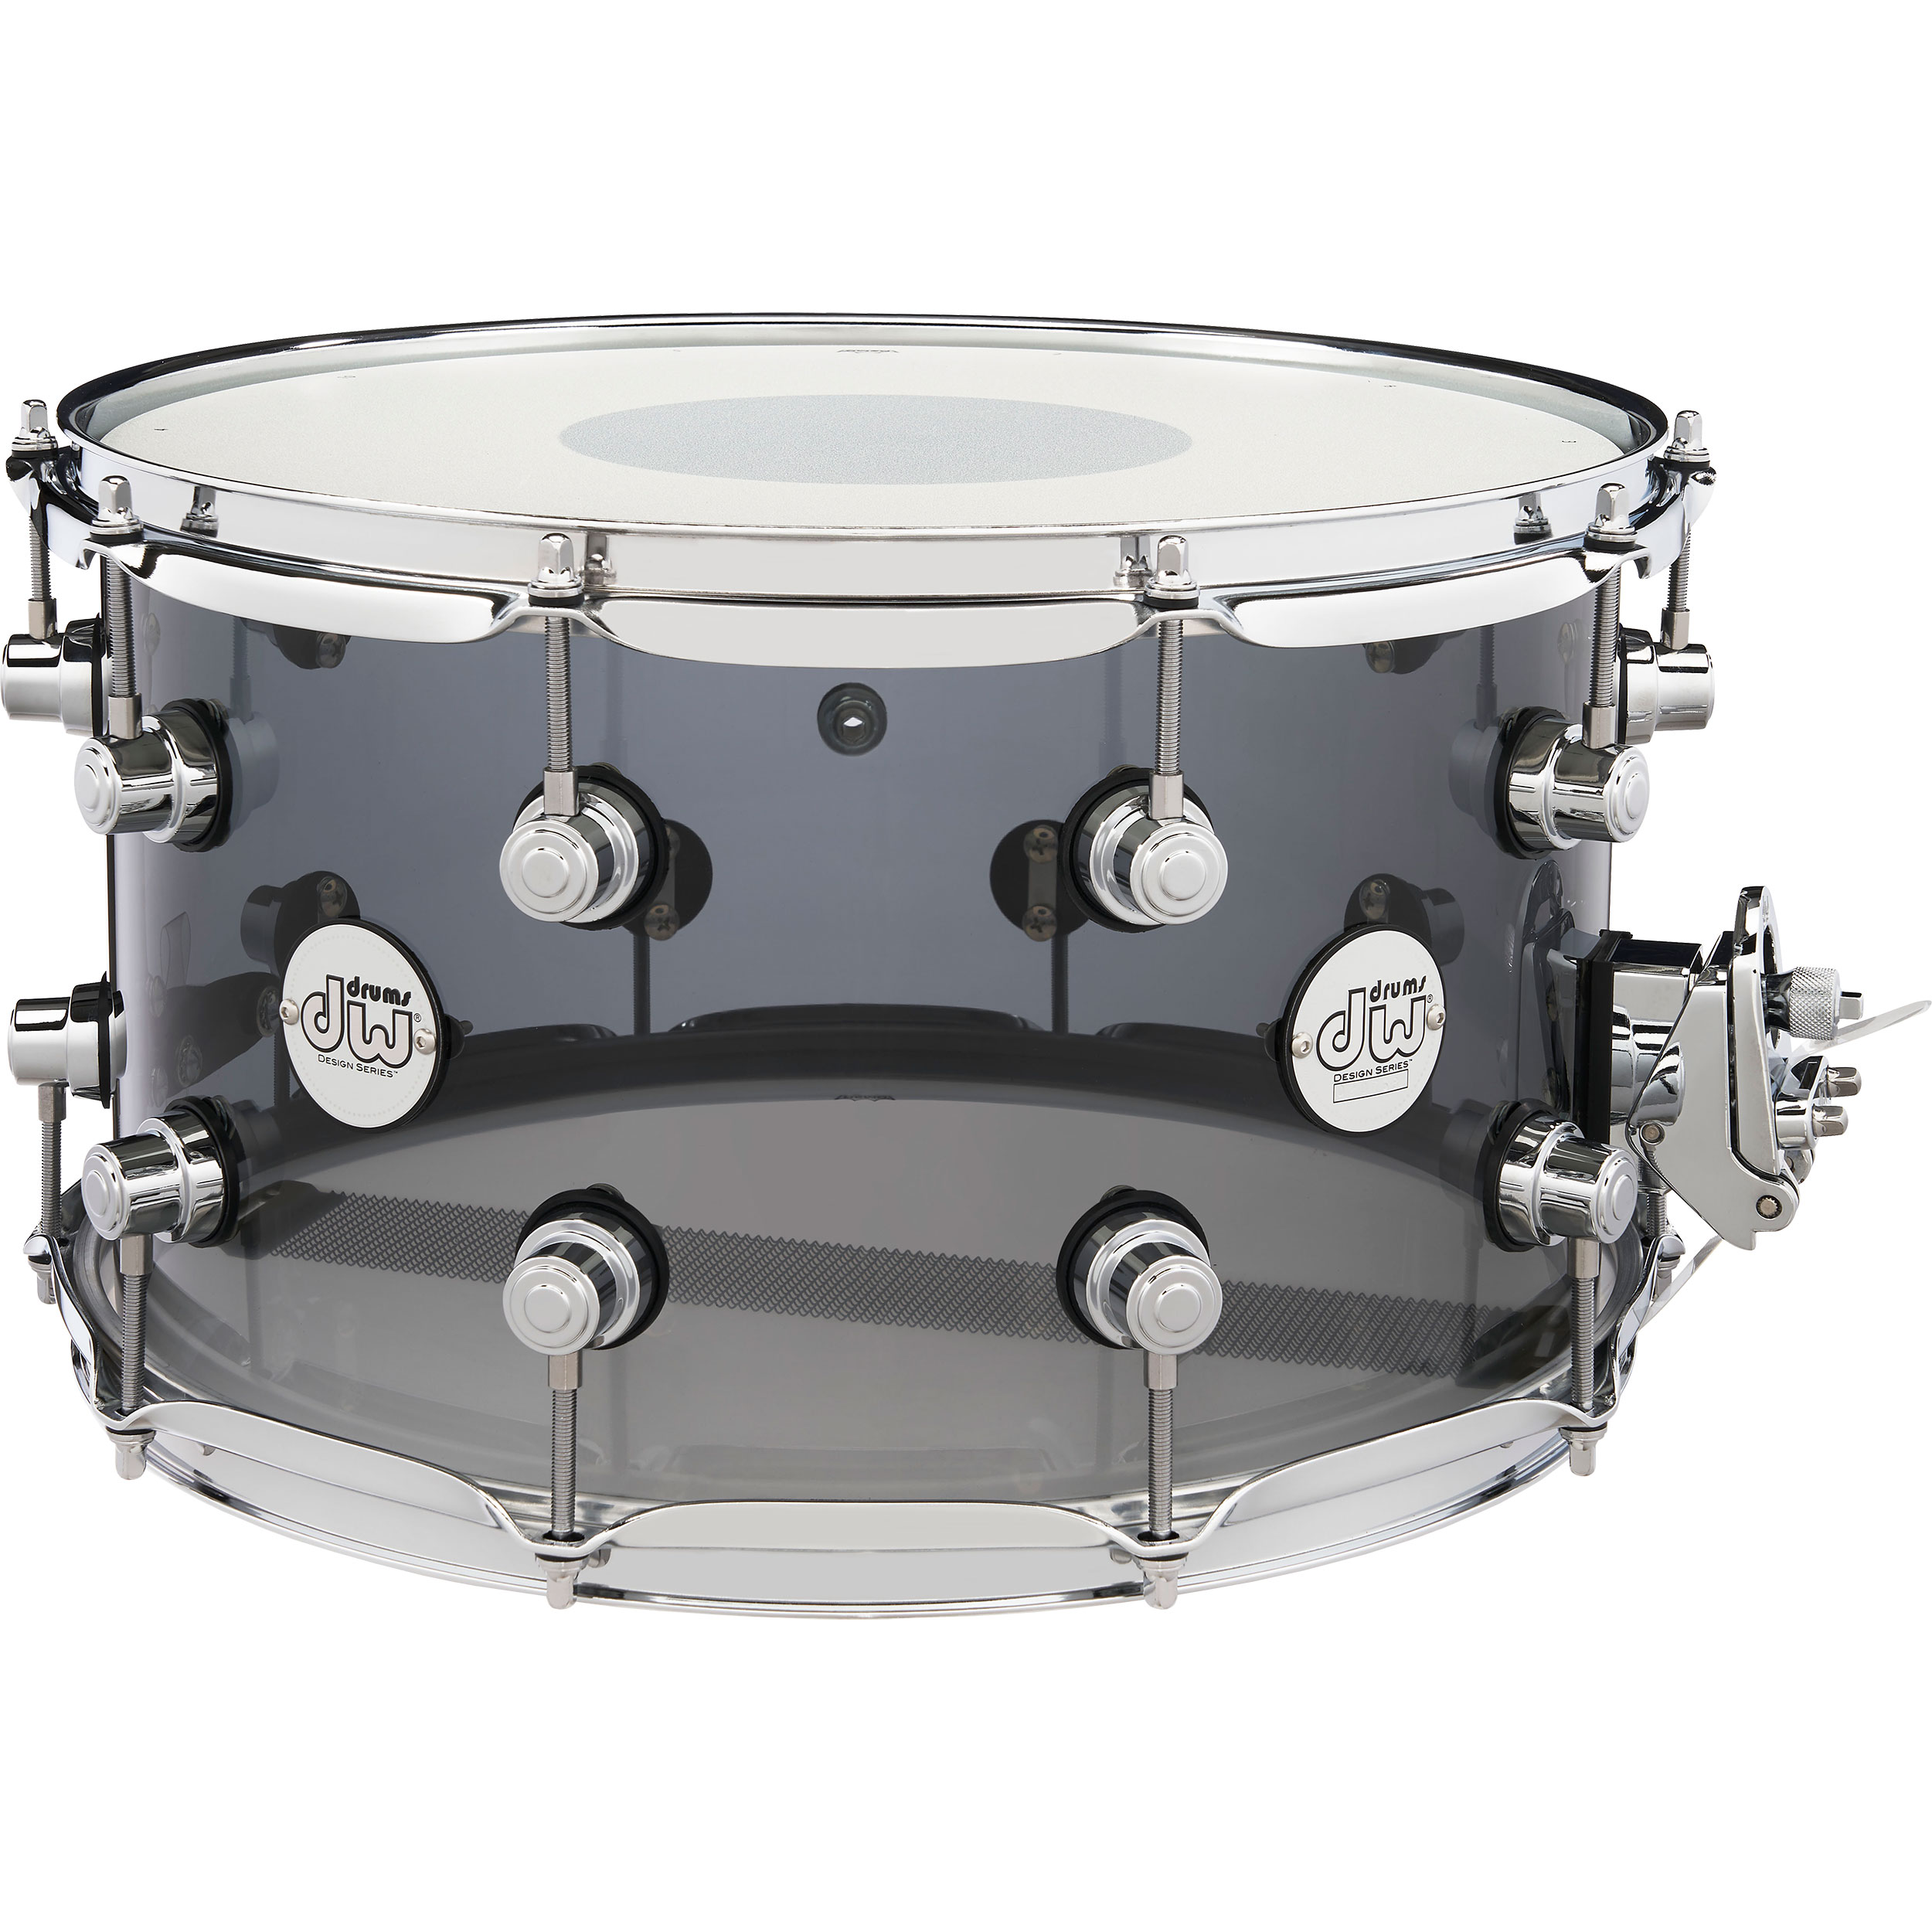 "DW 8"" x 14"" Design Series Acrylic Snare Drum in Smoke"